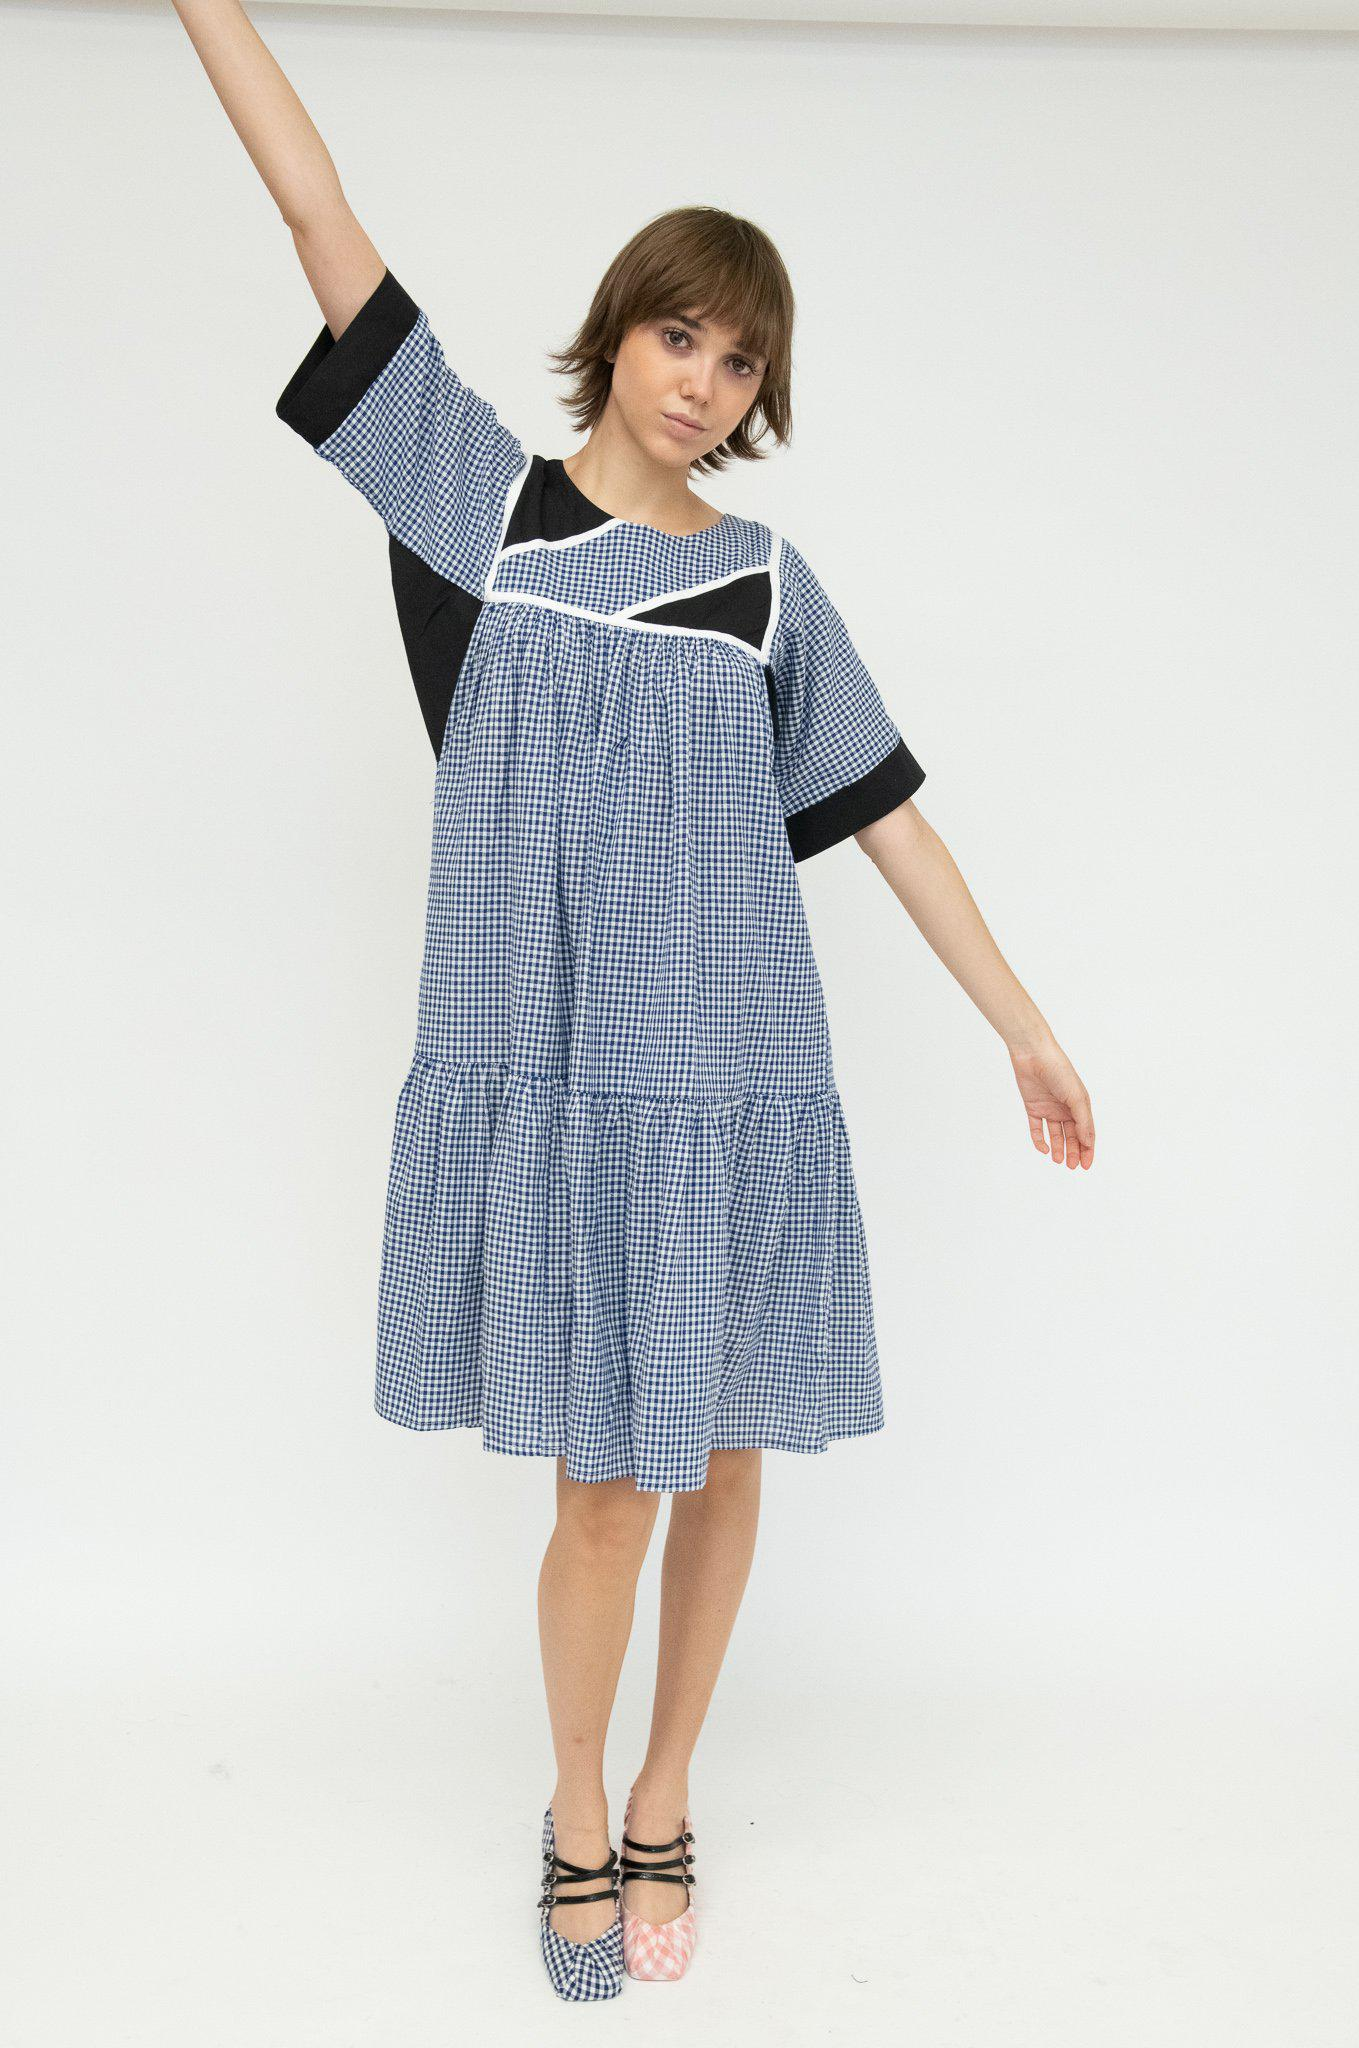 Housedress in Patchwork Gingham